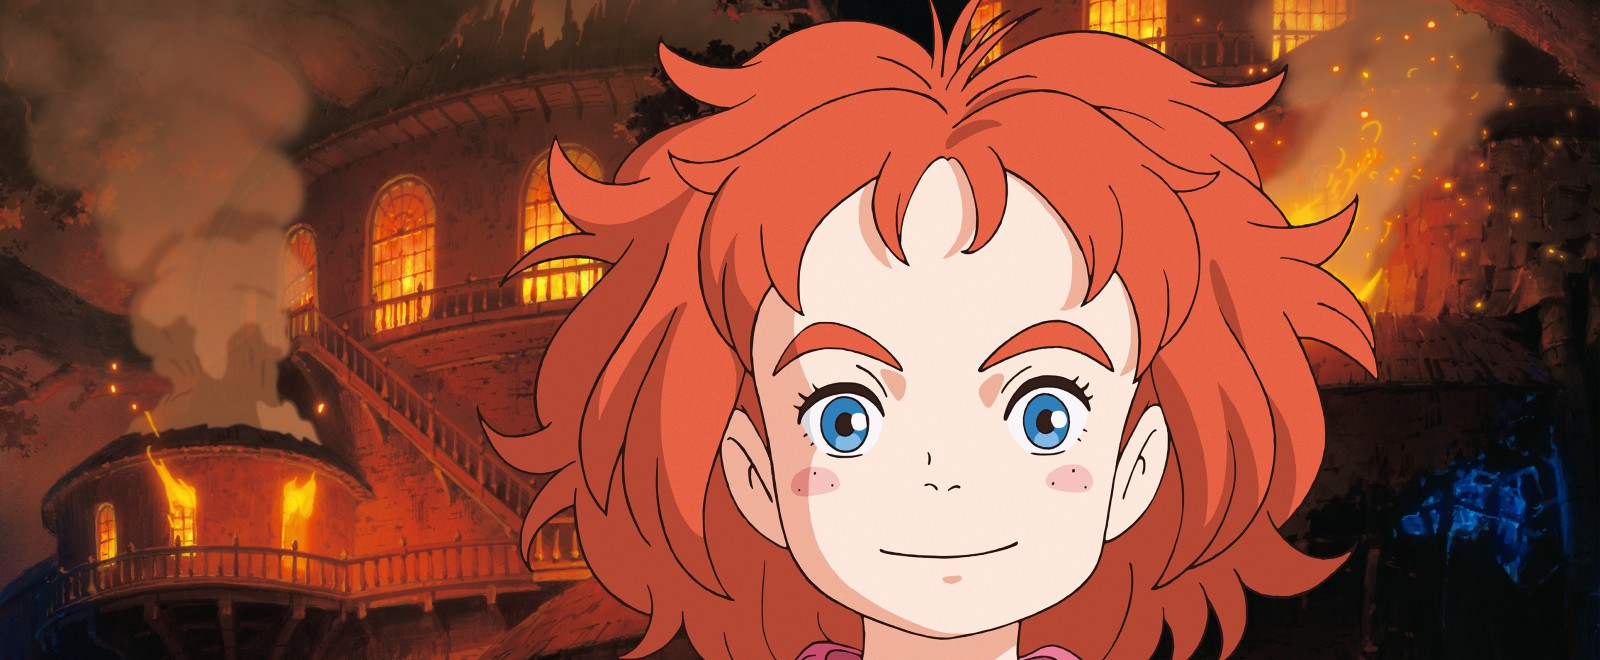 MARY AND THE WITCH'S FLOWER trailer